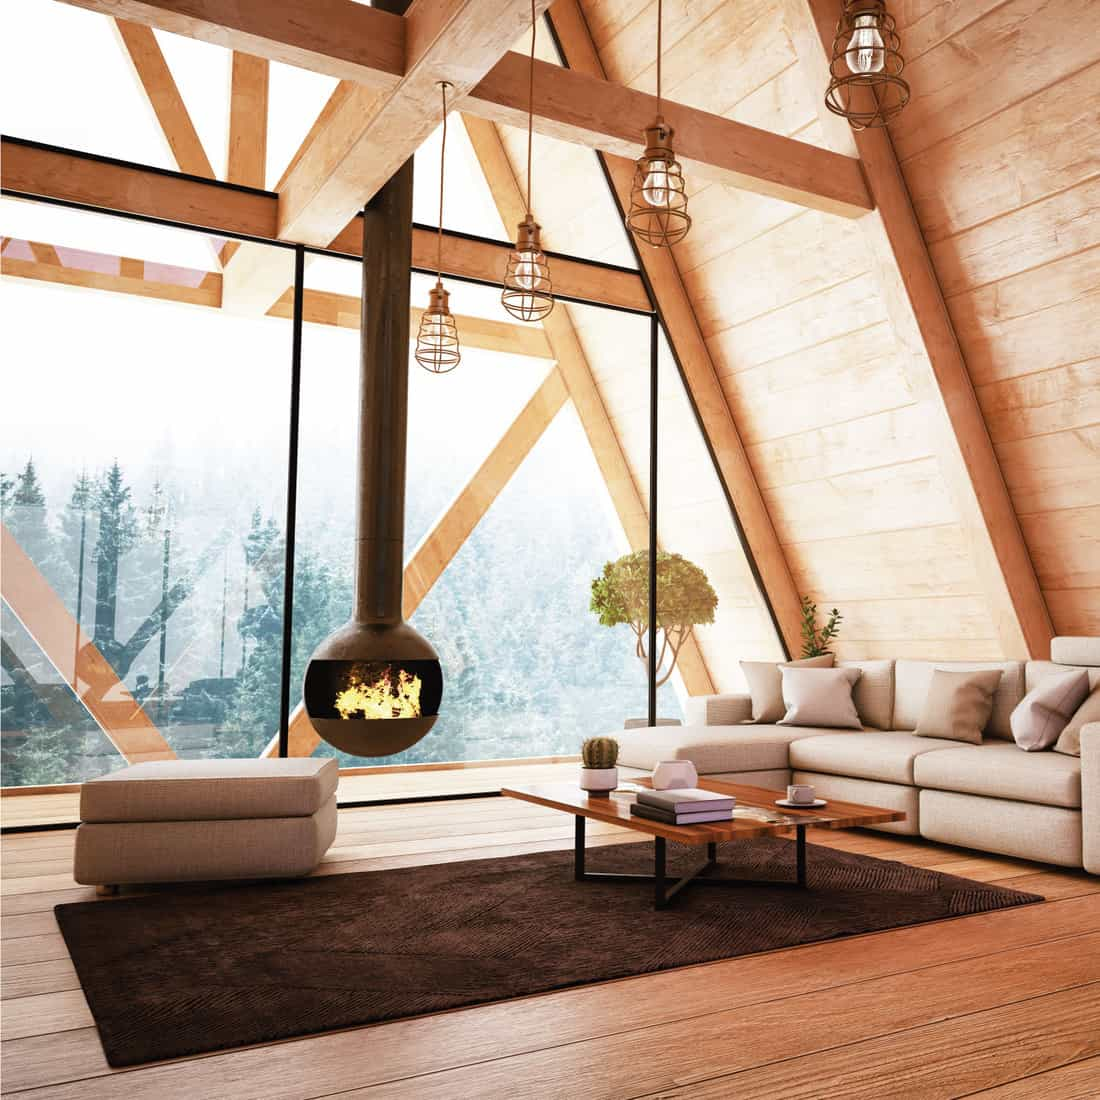 Wooden Interior with Furniture and Fireplace with deep brown carpet